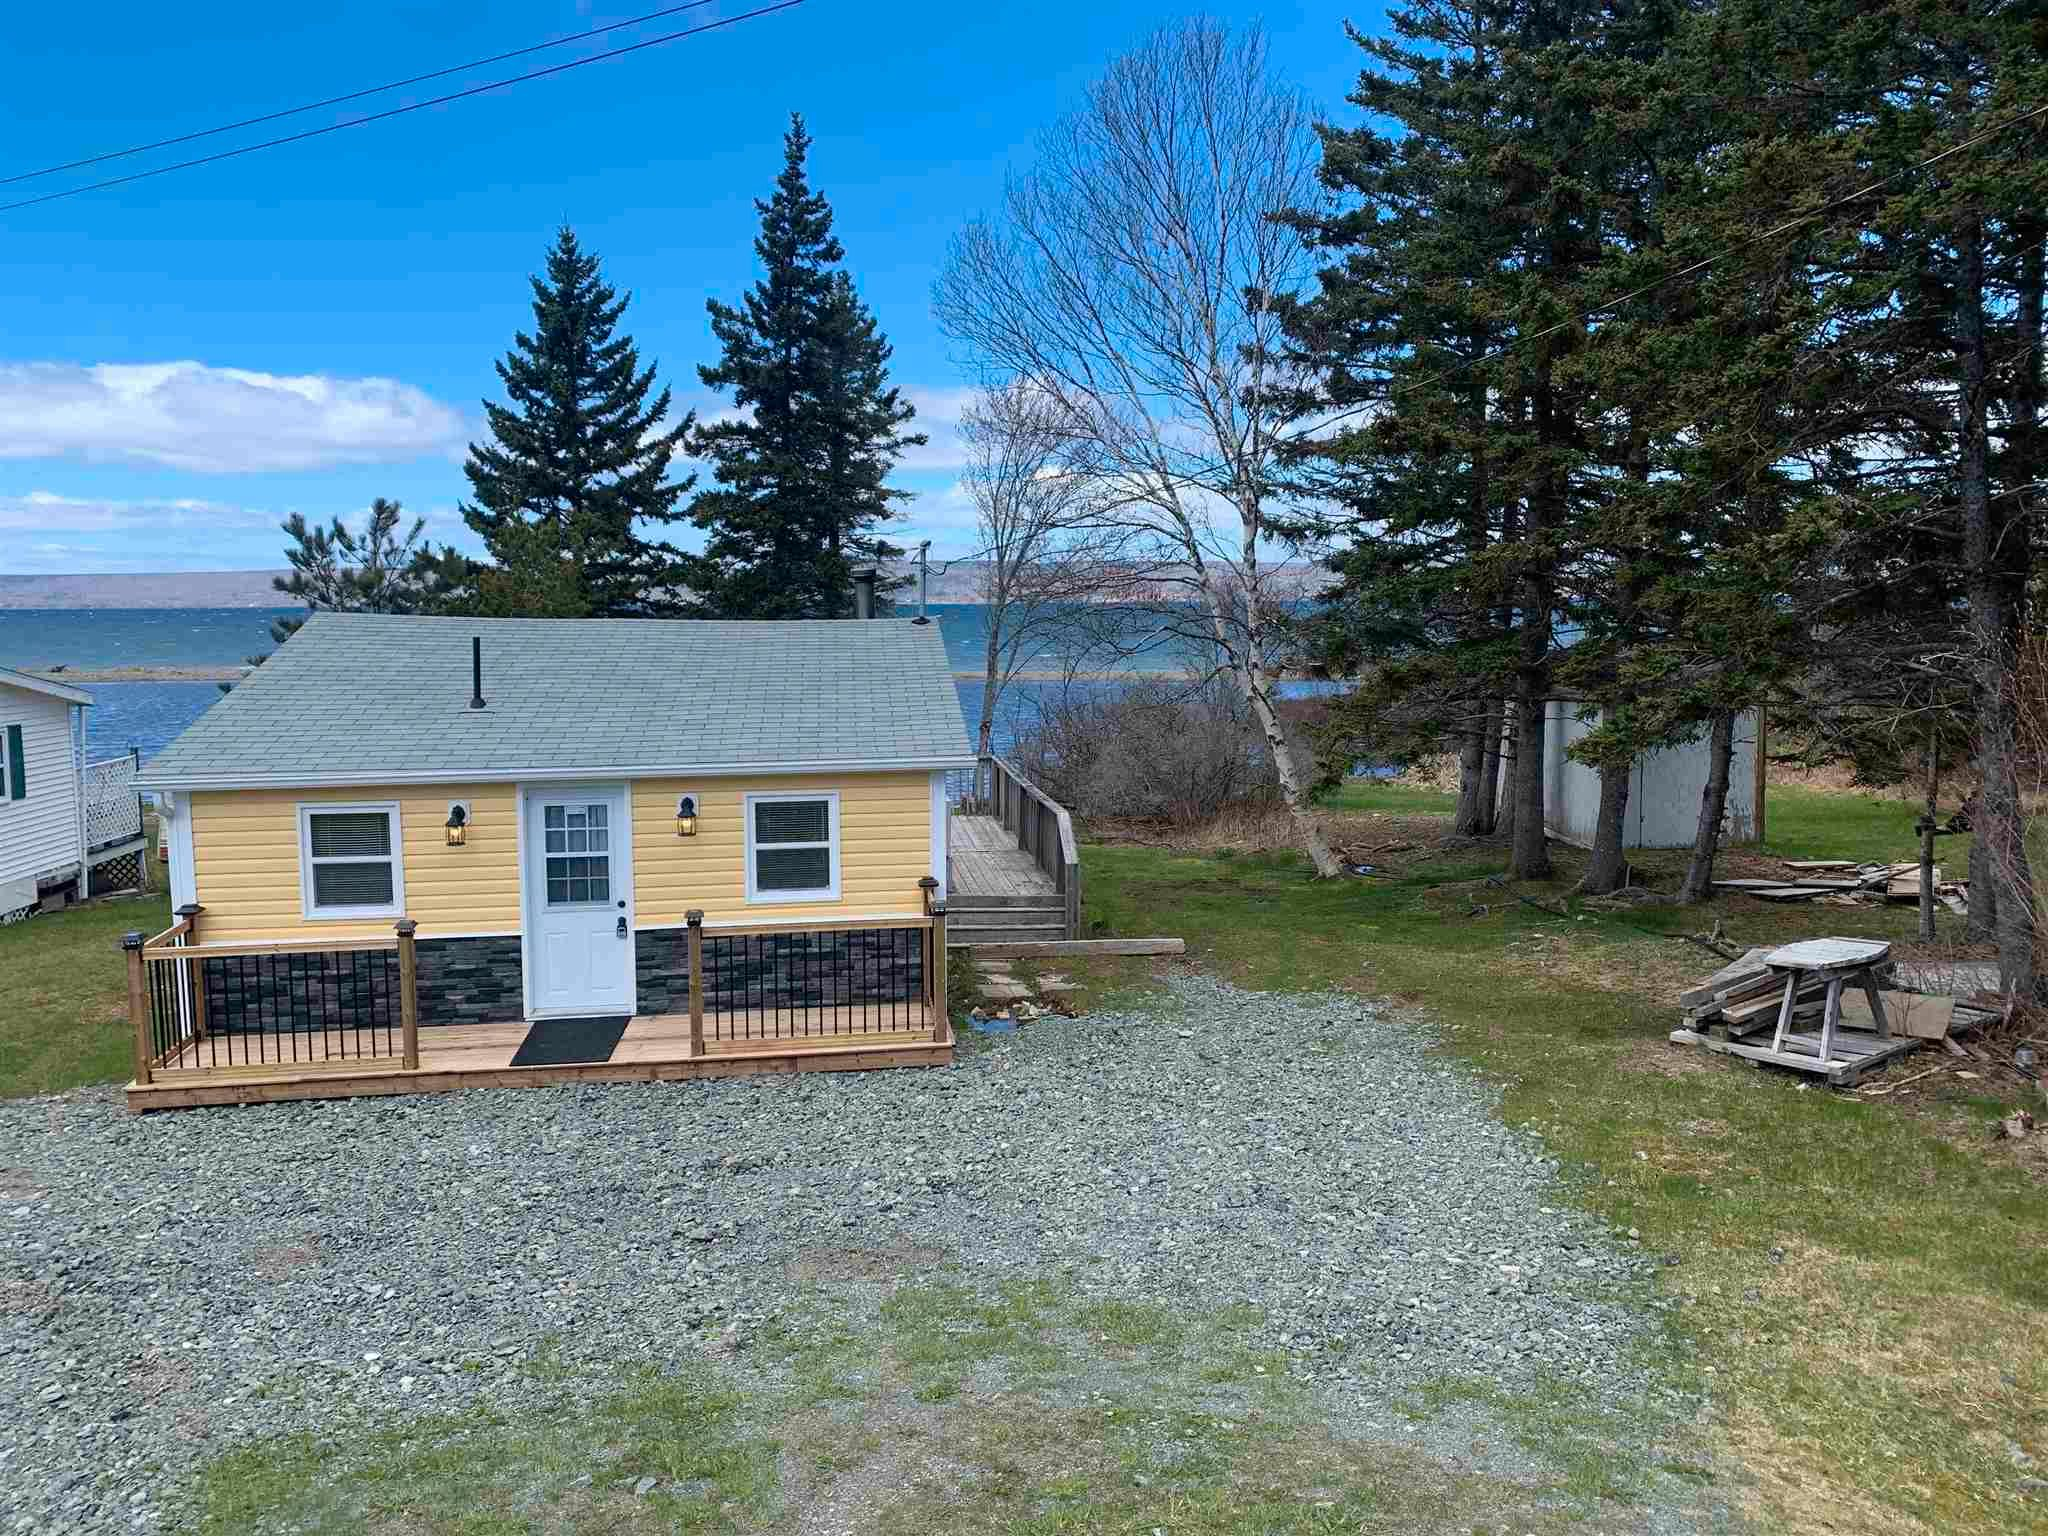 Main Photo: 7542 East Bay Highway in Big Pond: 207-C. B. County Residential for sale (Cape Breton)  : MLS®# 202110775